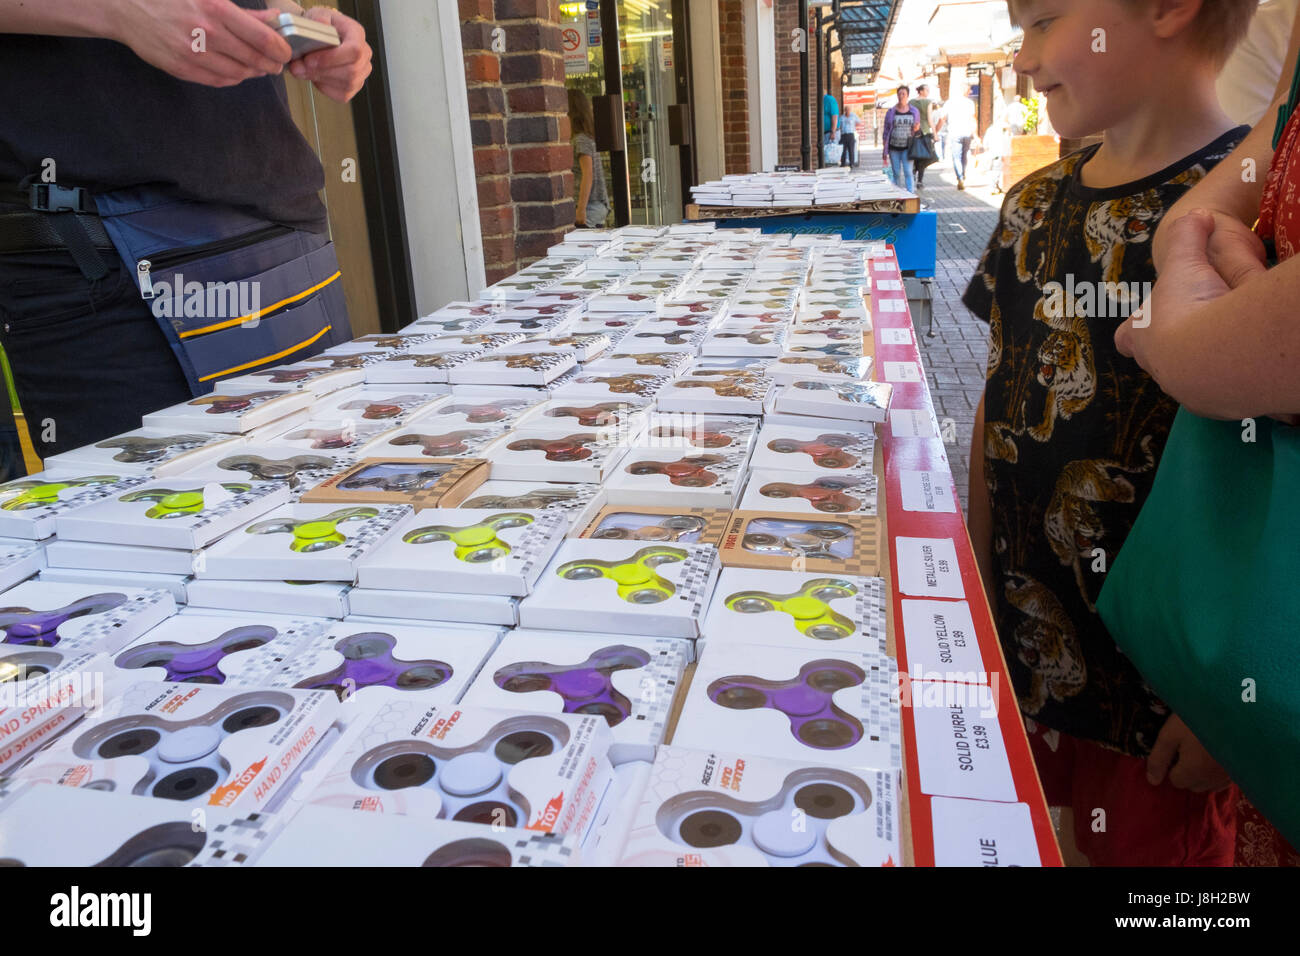 Fidget spinners the latest craze to hit the UK, various colours market stall young boy buying - Stock Image